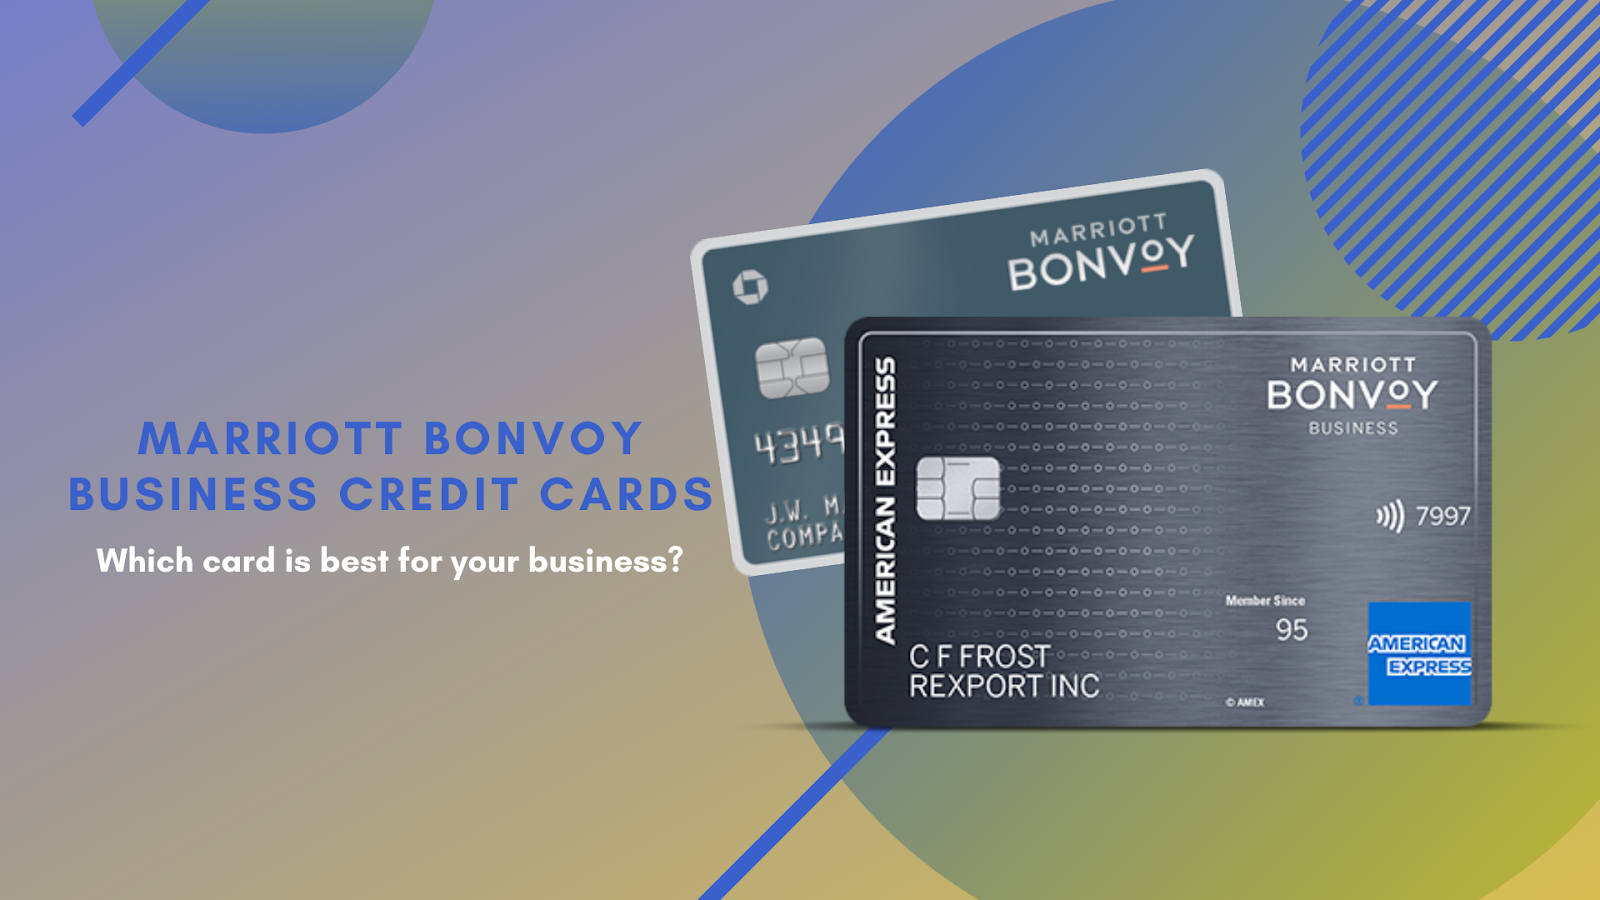 marriott bonvoy business credit cards